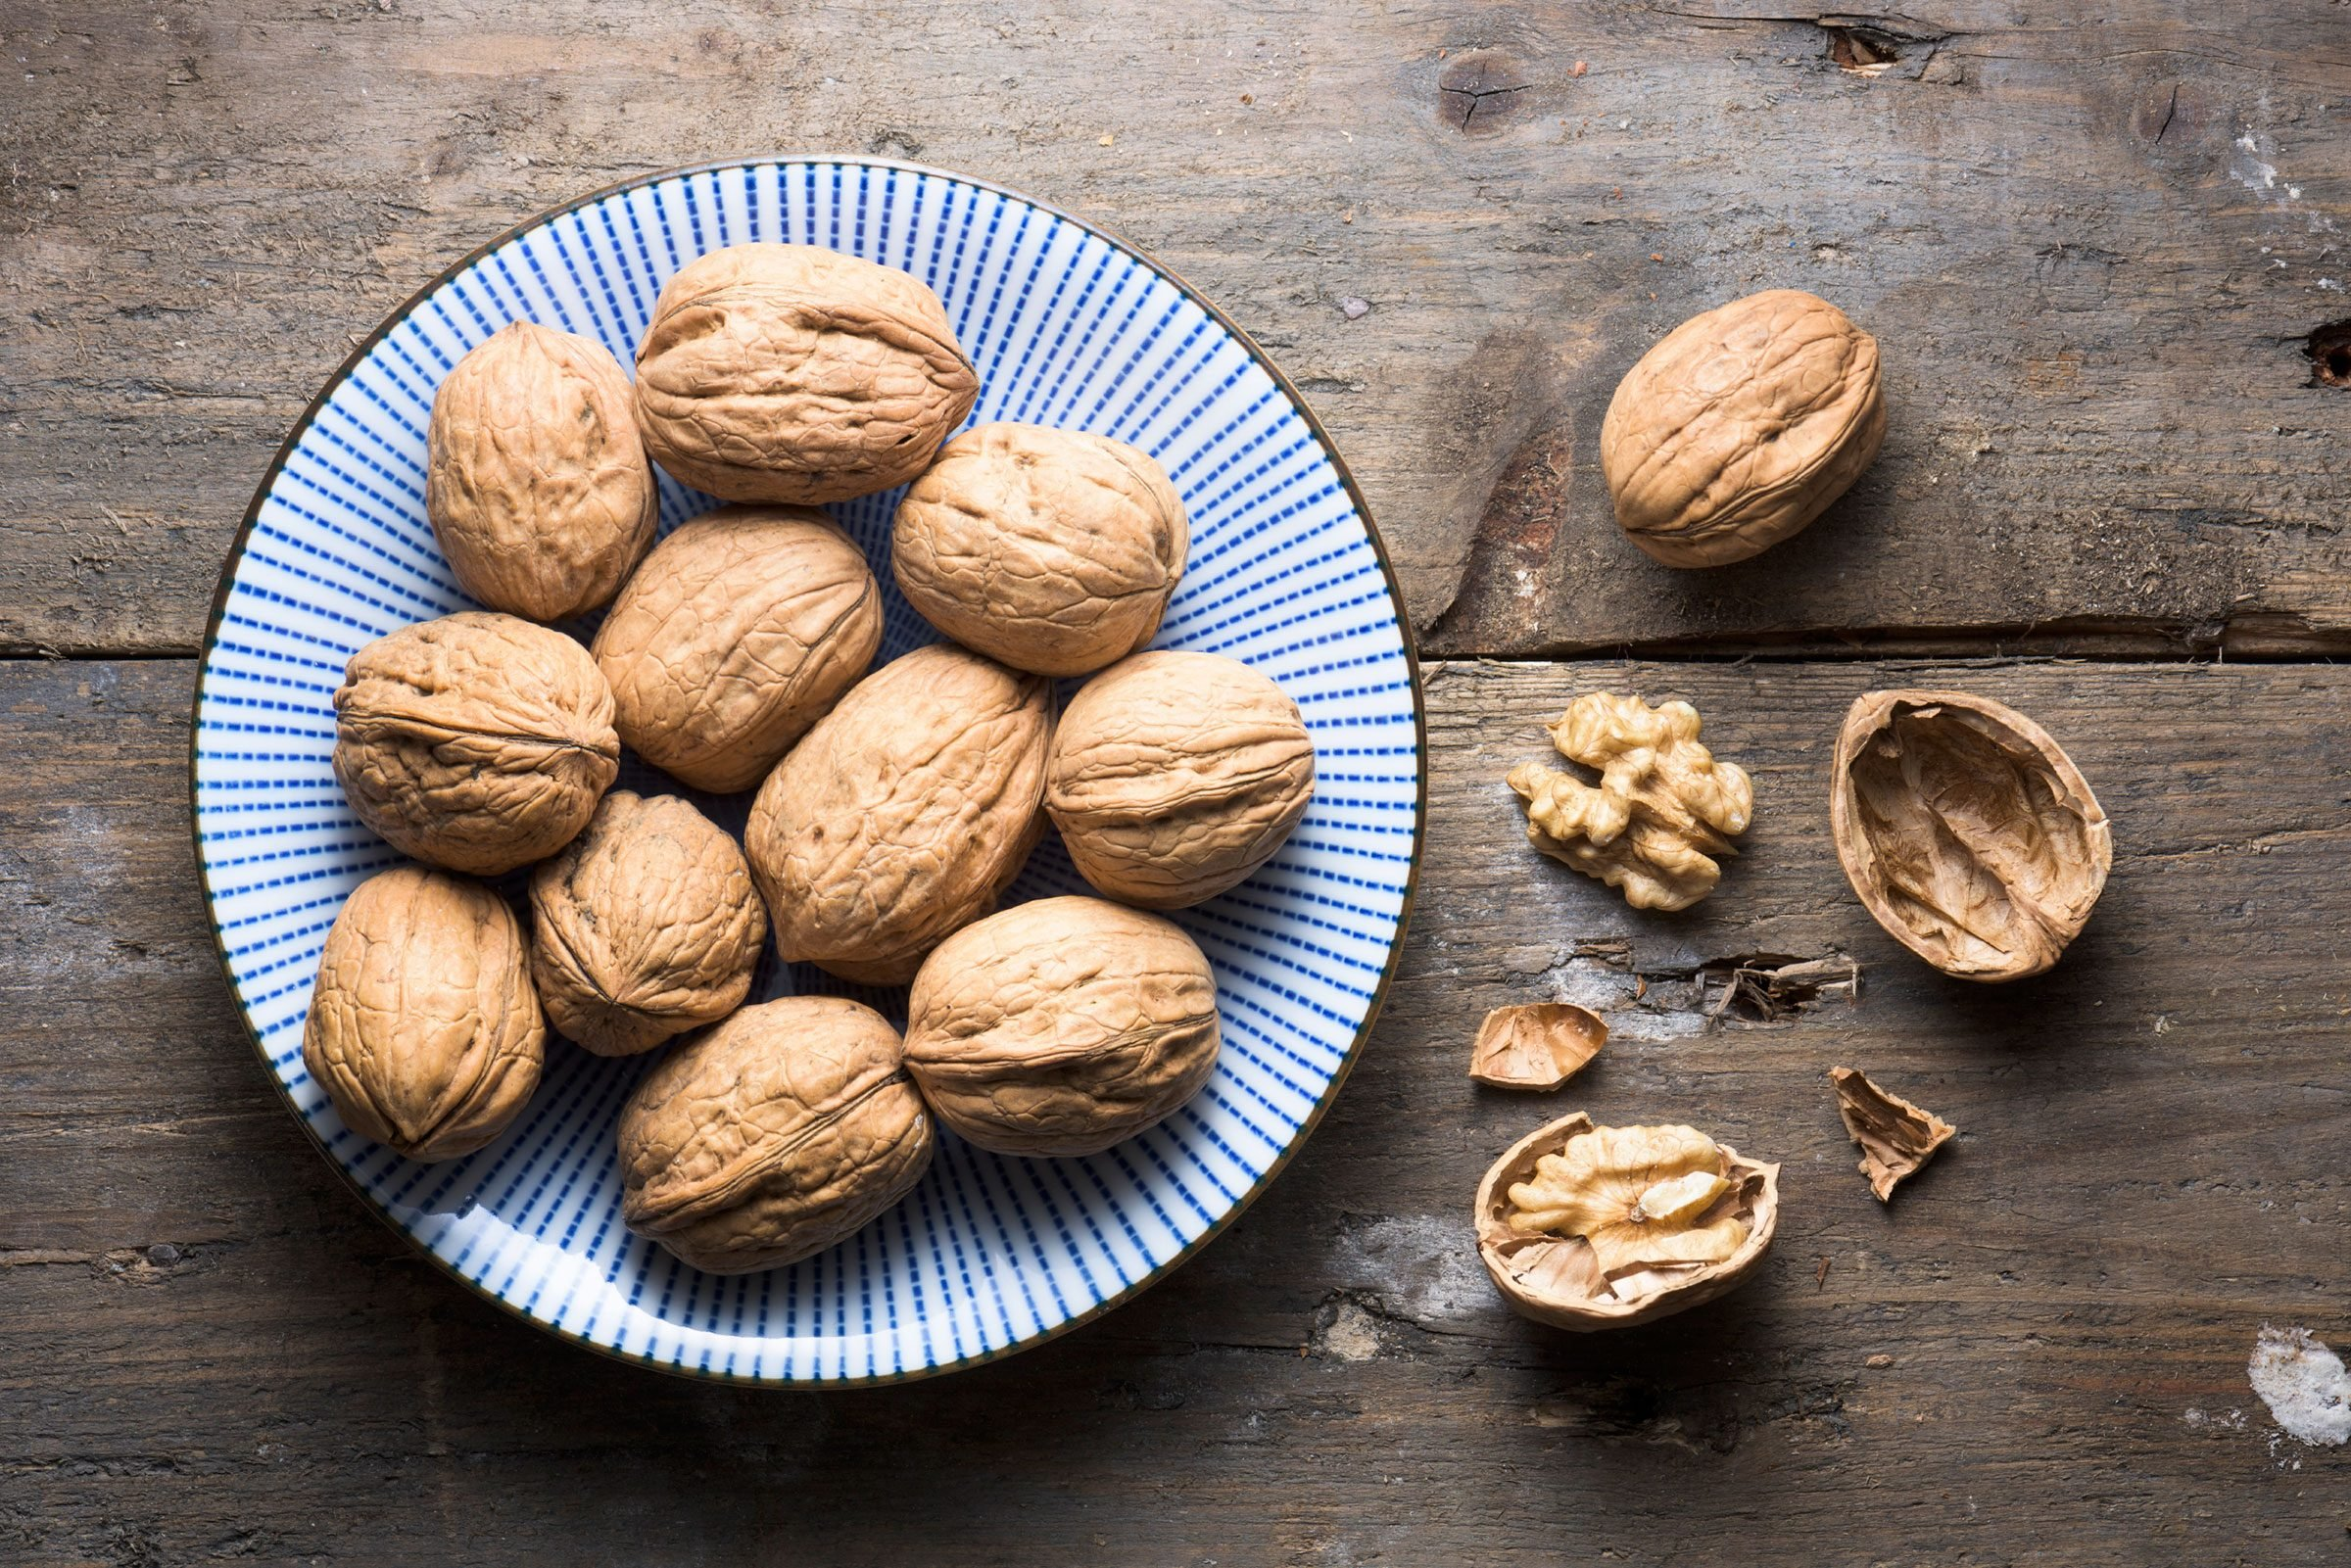 10 foods that all diabetics should avoid - One Of Your Daily Snacks Is Walnuts